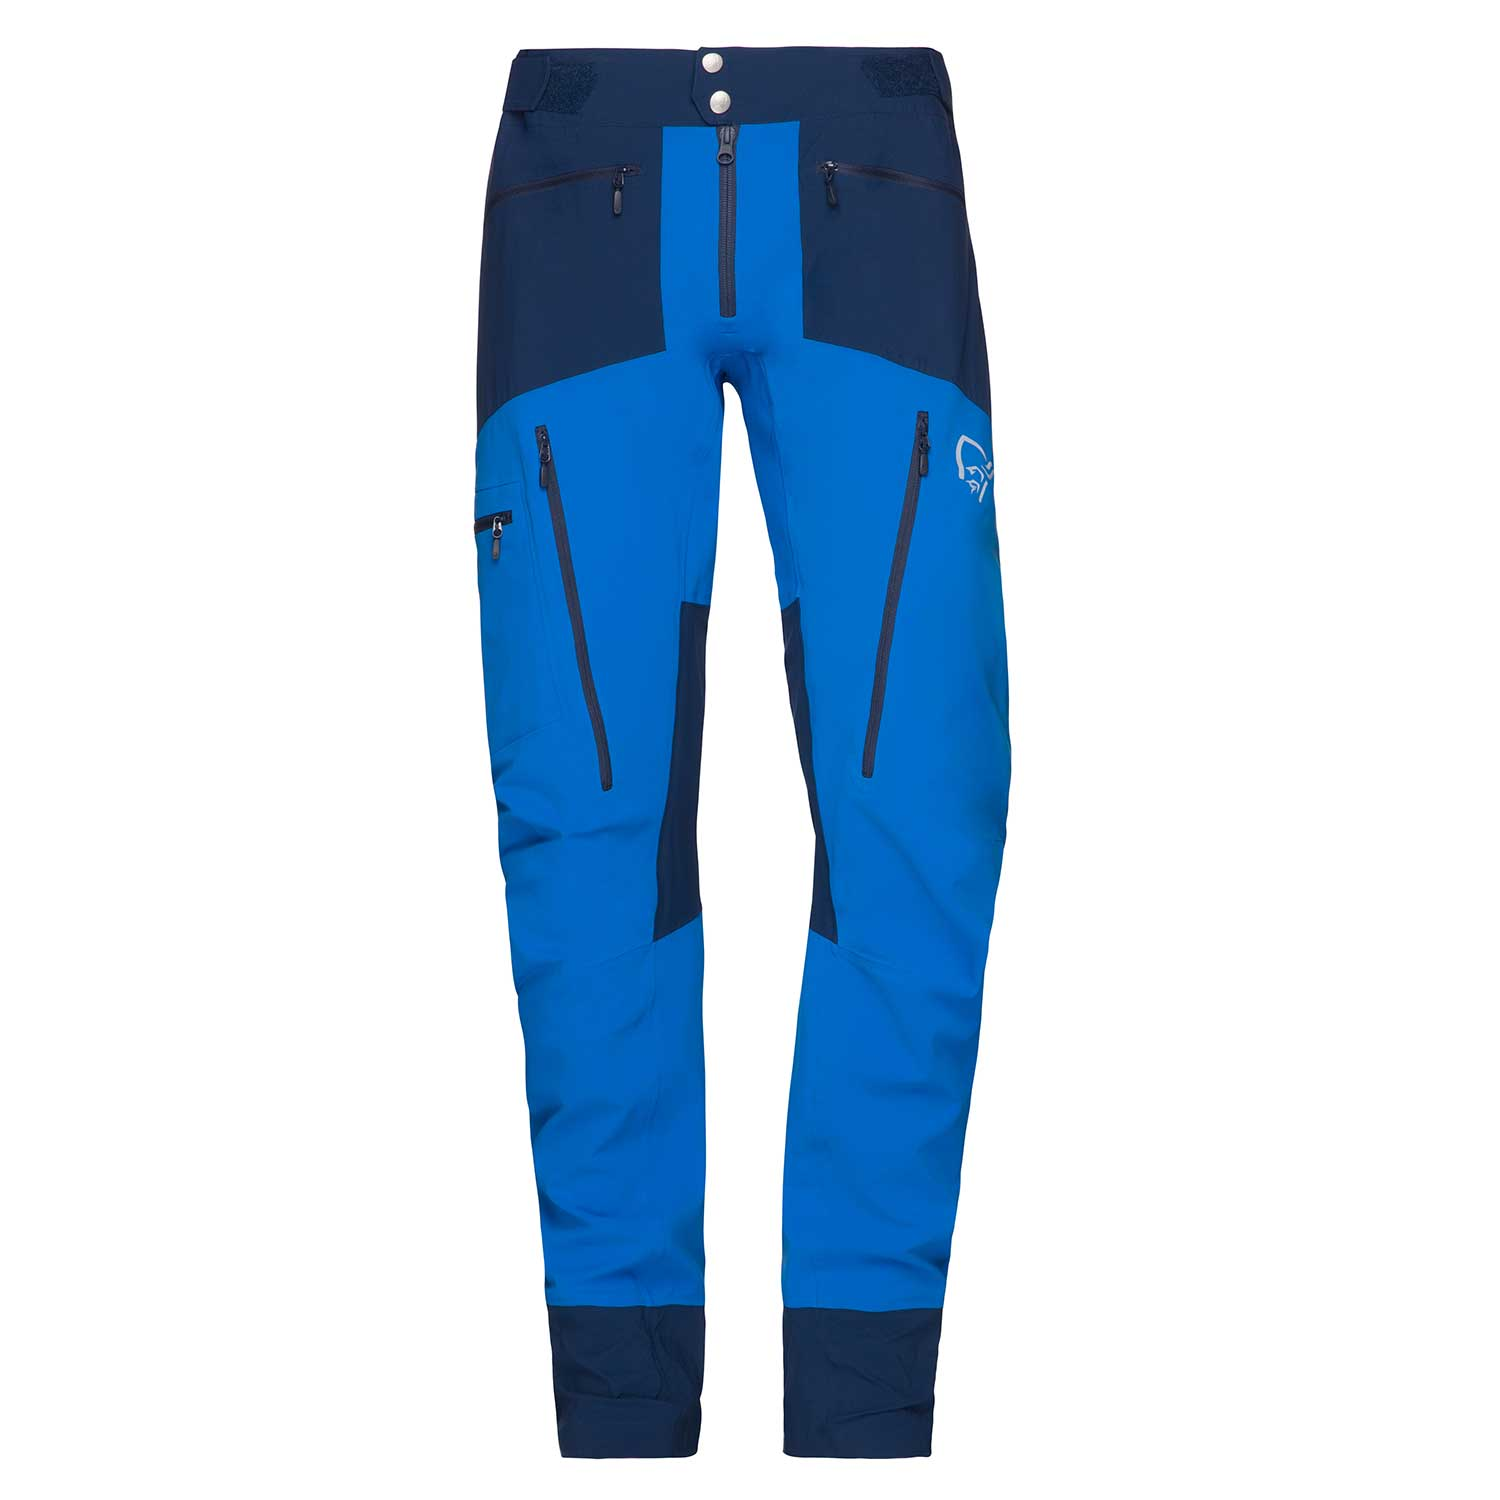 fjora Windstopper Pants (M)